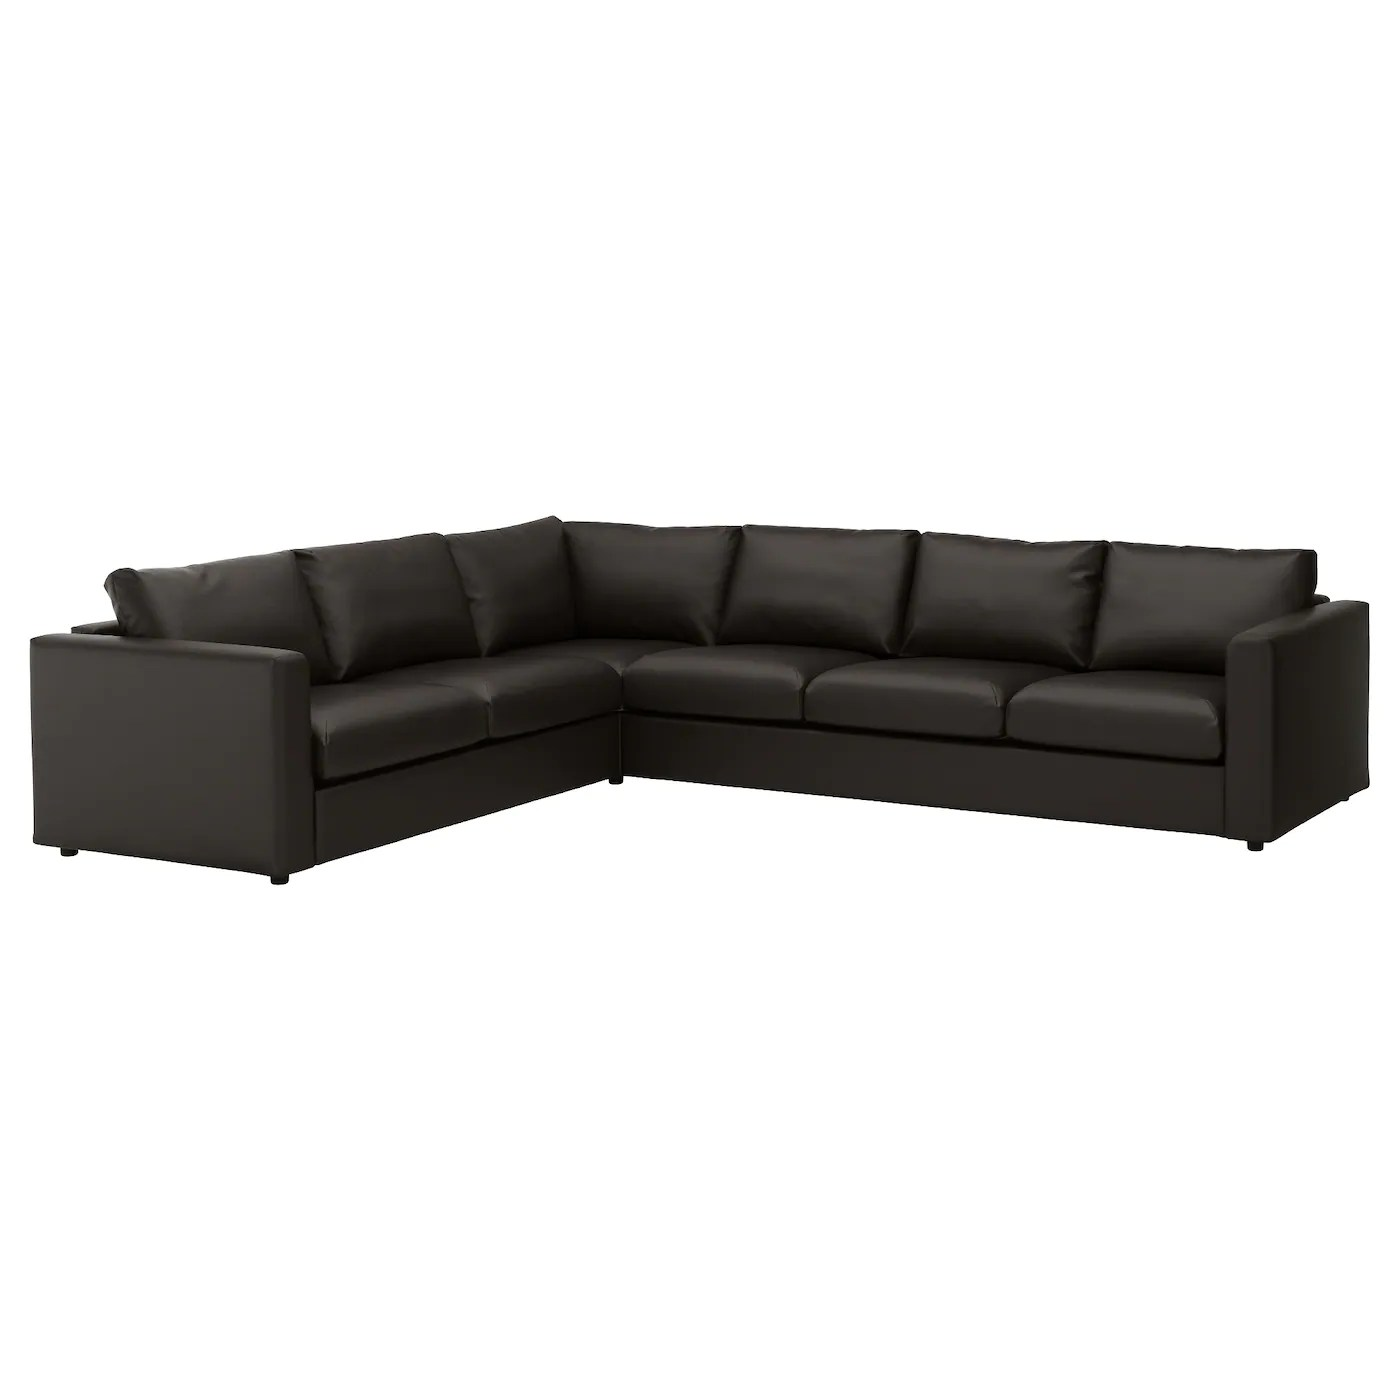 Möbel 24 Sofa Leather Coated Fabric Sofas Ikea